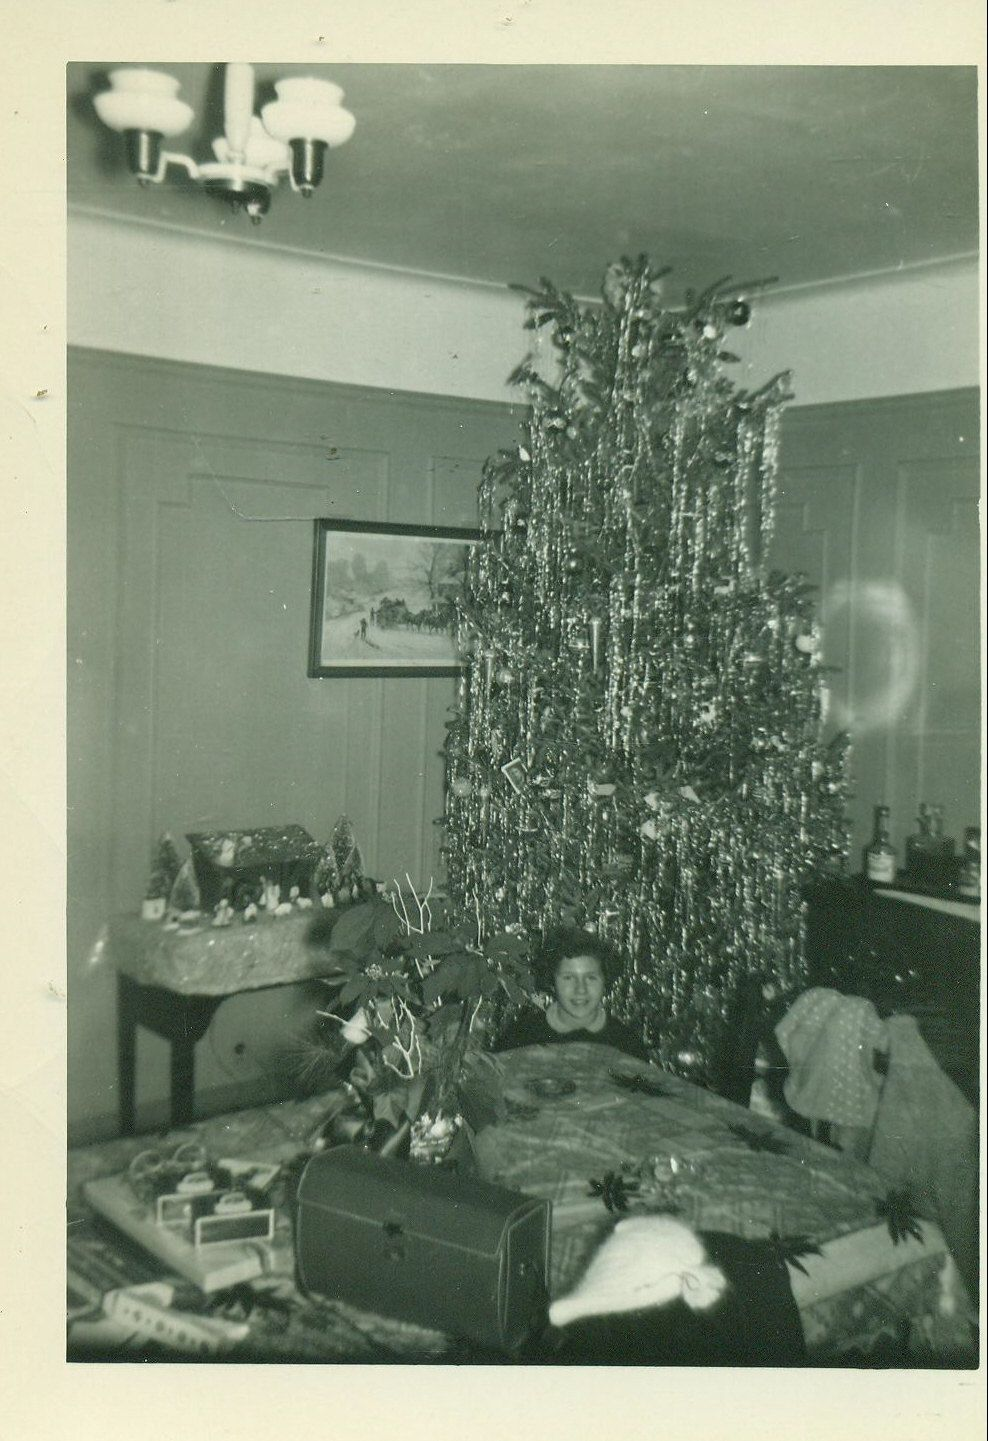 Vintage christmas decorations 1950s - 1950s Christmas Tree Living Room Decorations Liquor Cabinet In Corner Snapshot Vintage Black White Photo Photograph